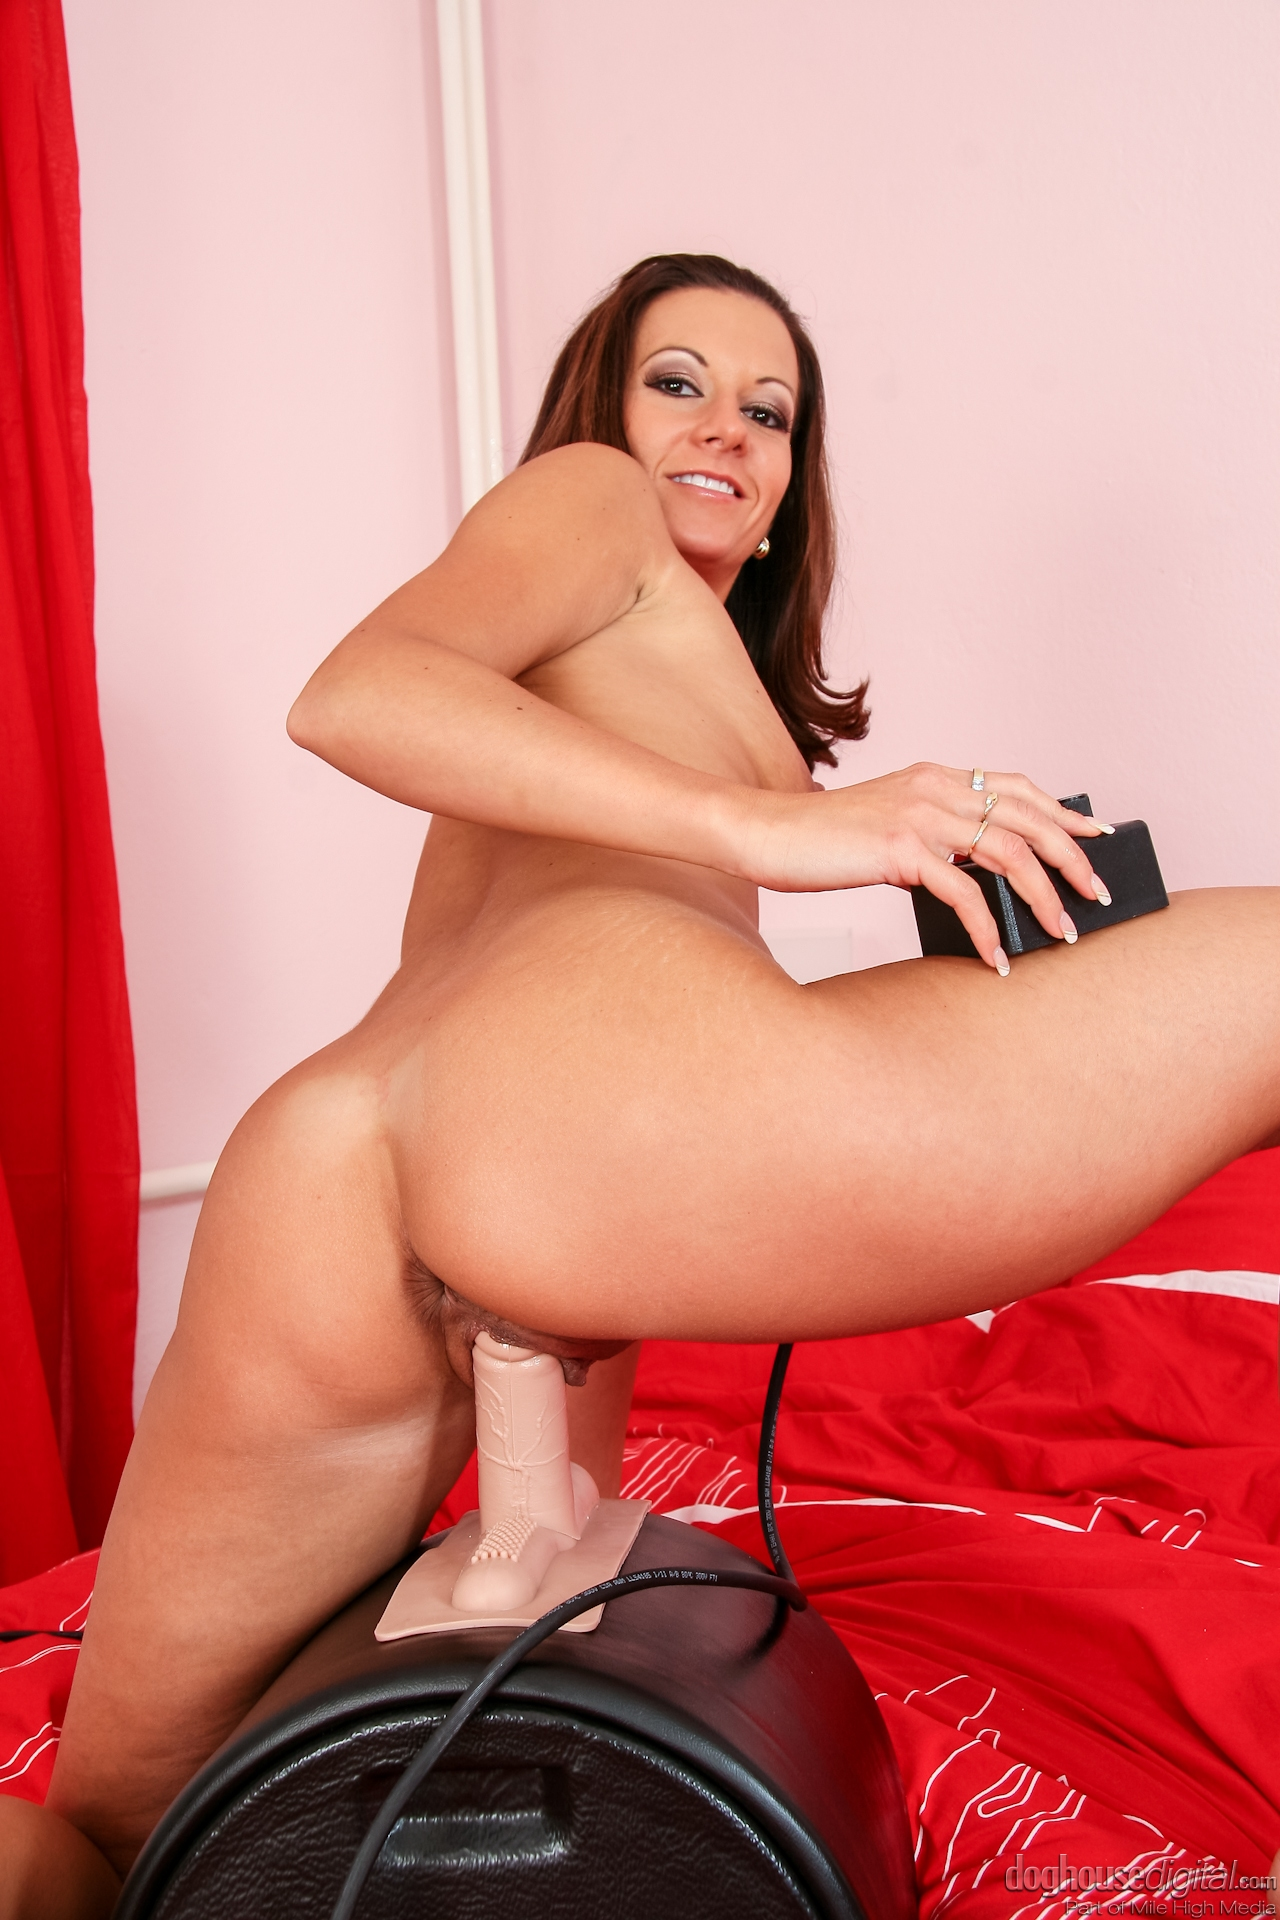 sxx pic teasers 22786 4a39768224 nude 01 22786 11